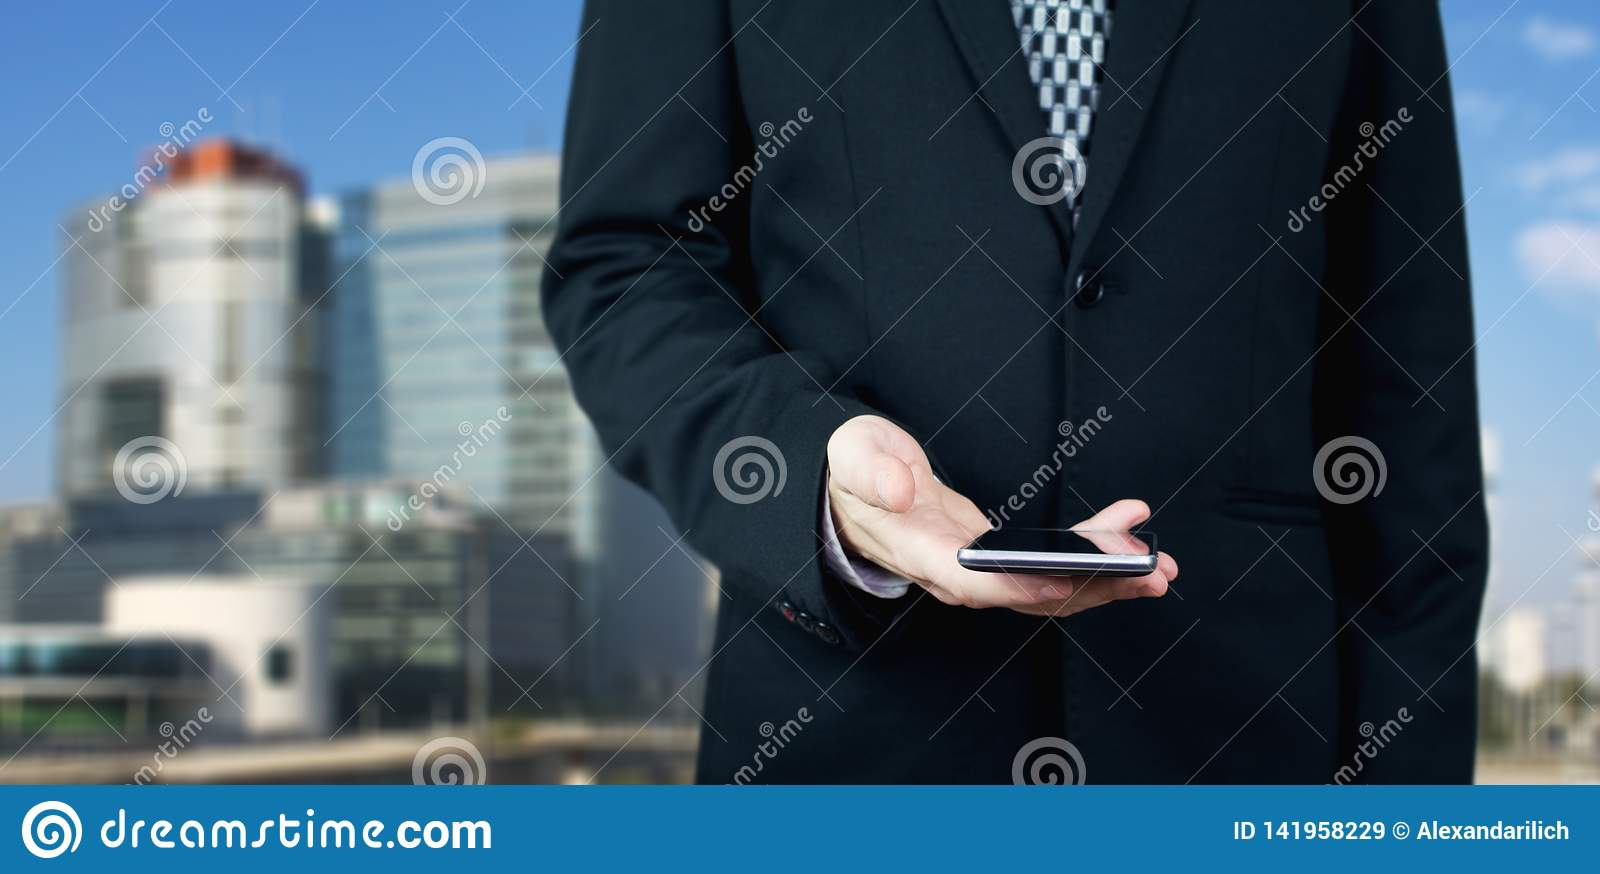 Businessman Holding Smartphone in Hand With Business City and Corporate Buildings In Background